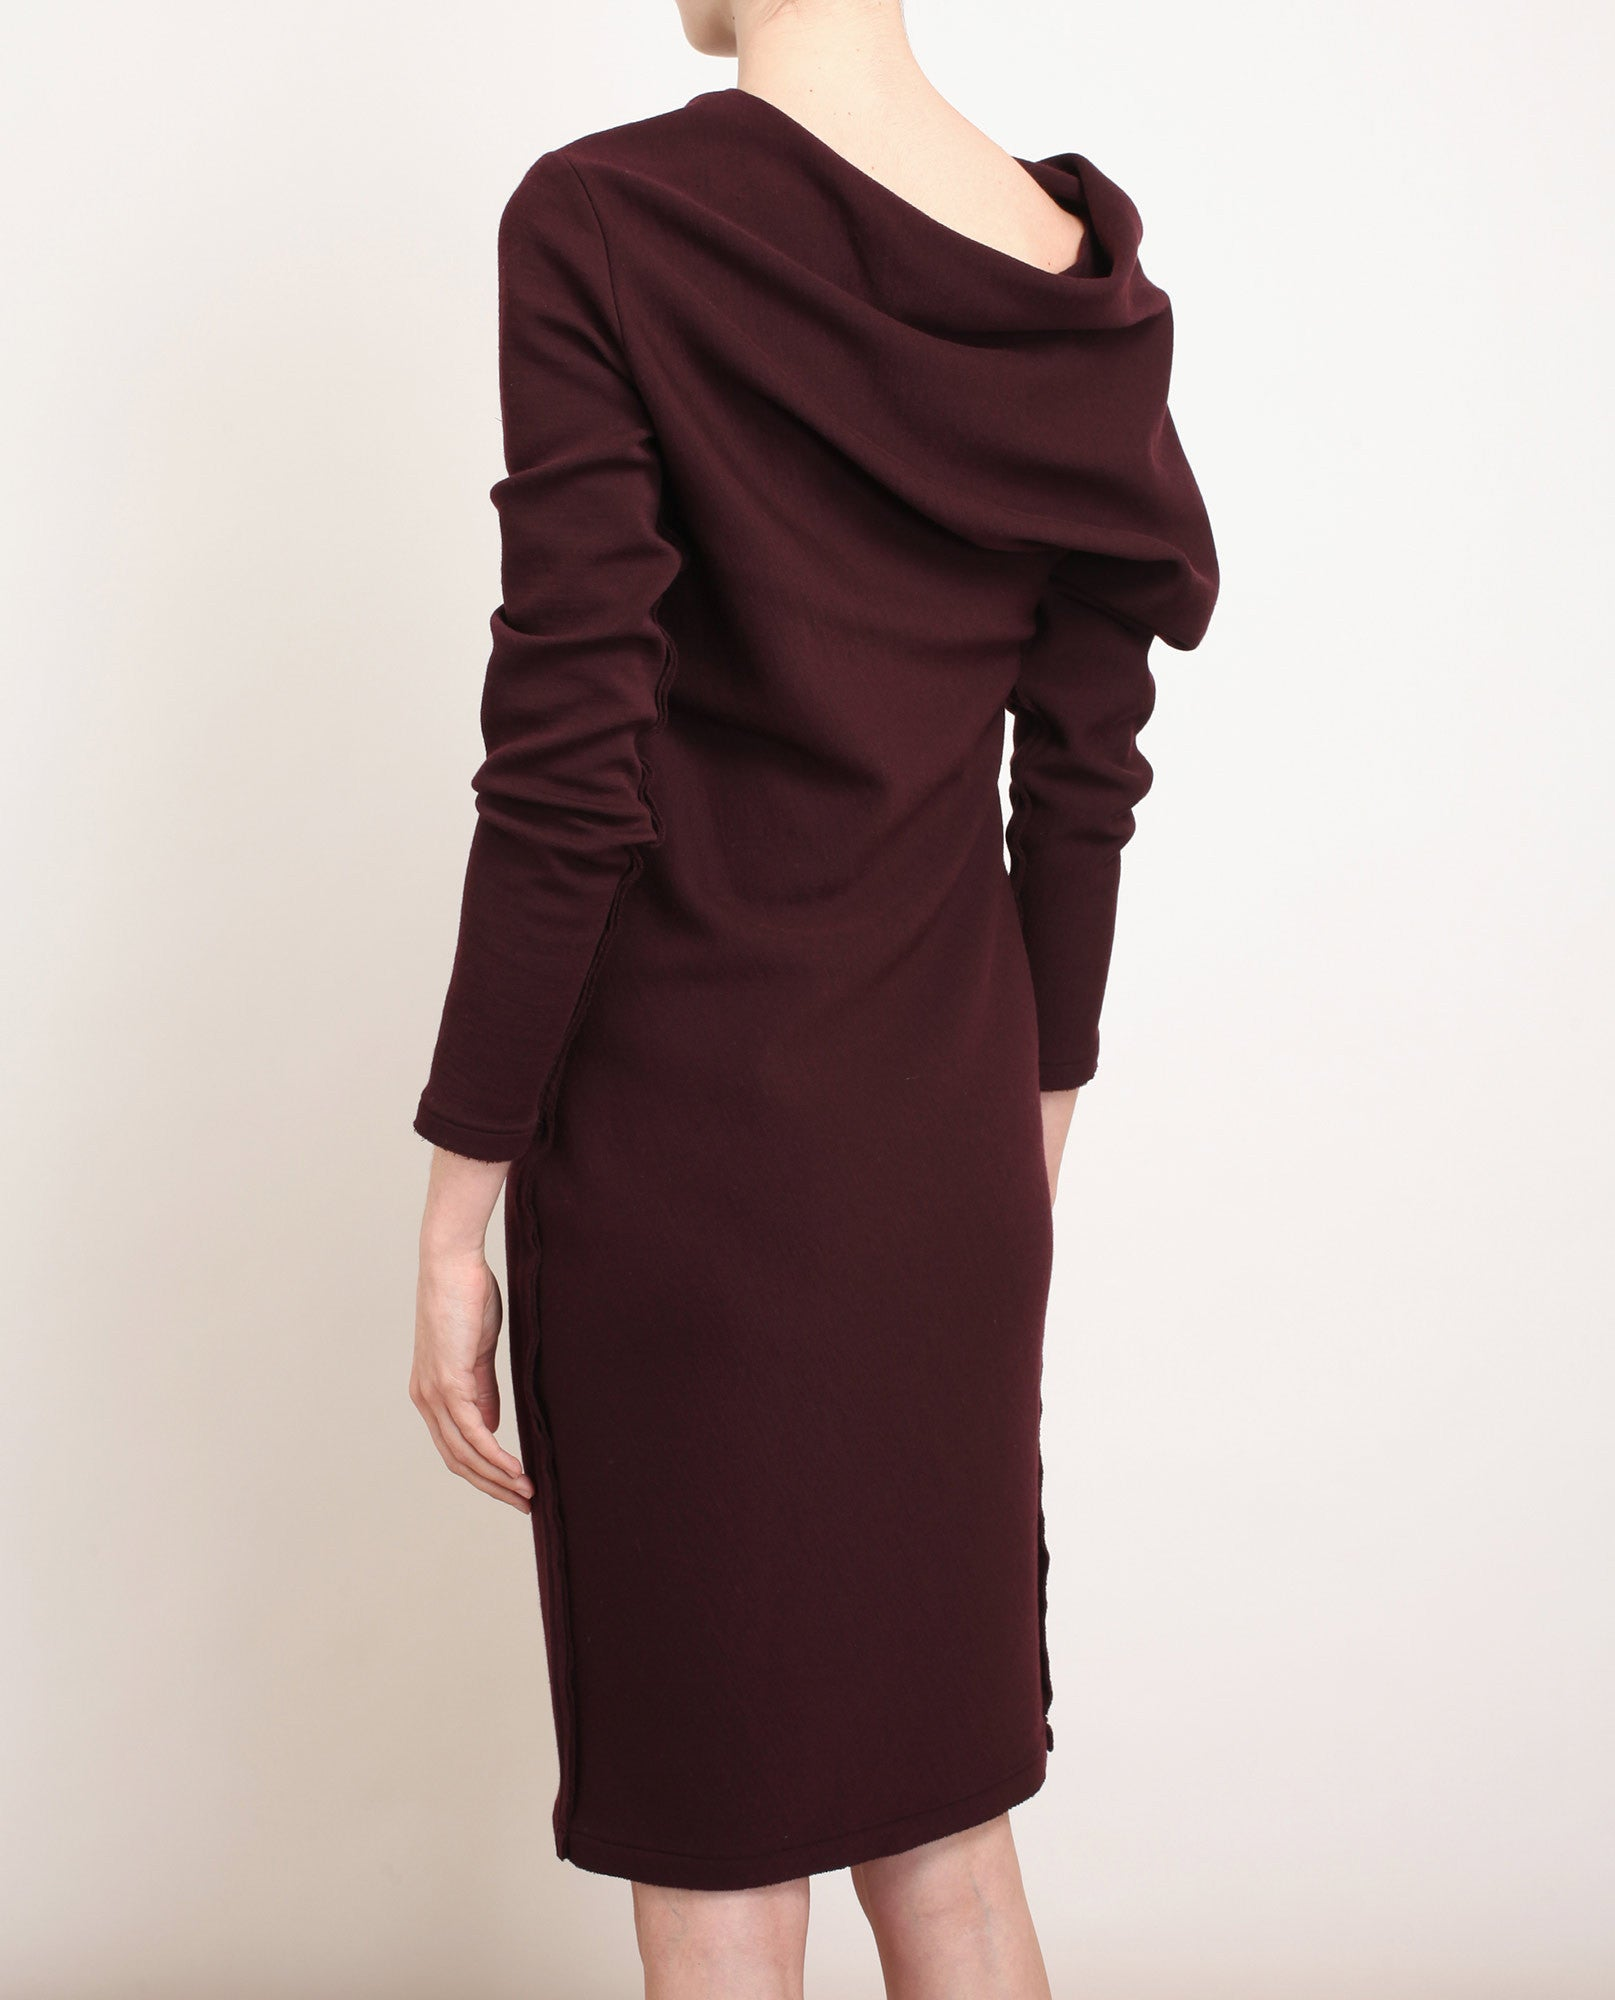 Stretch Knit Wool Dress